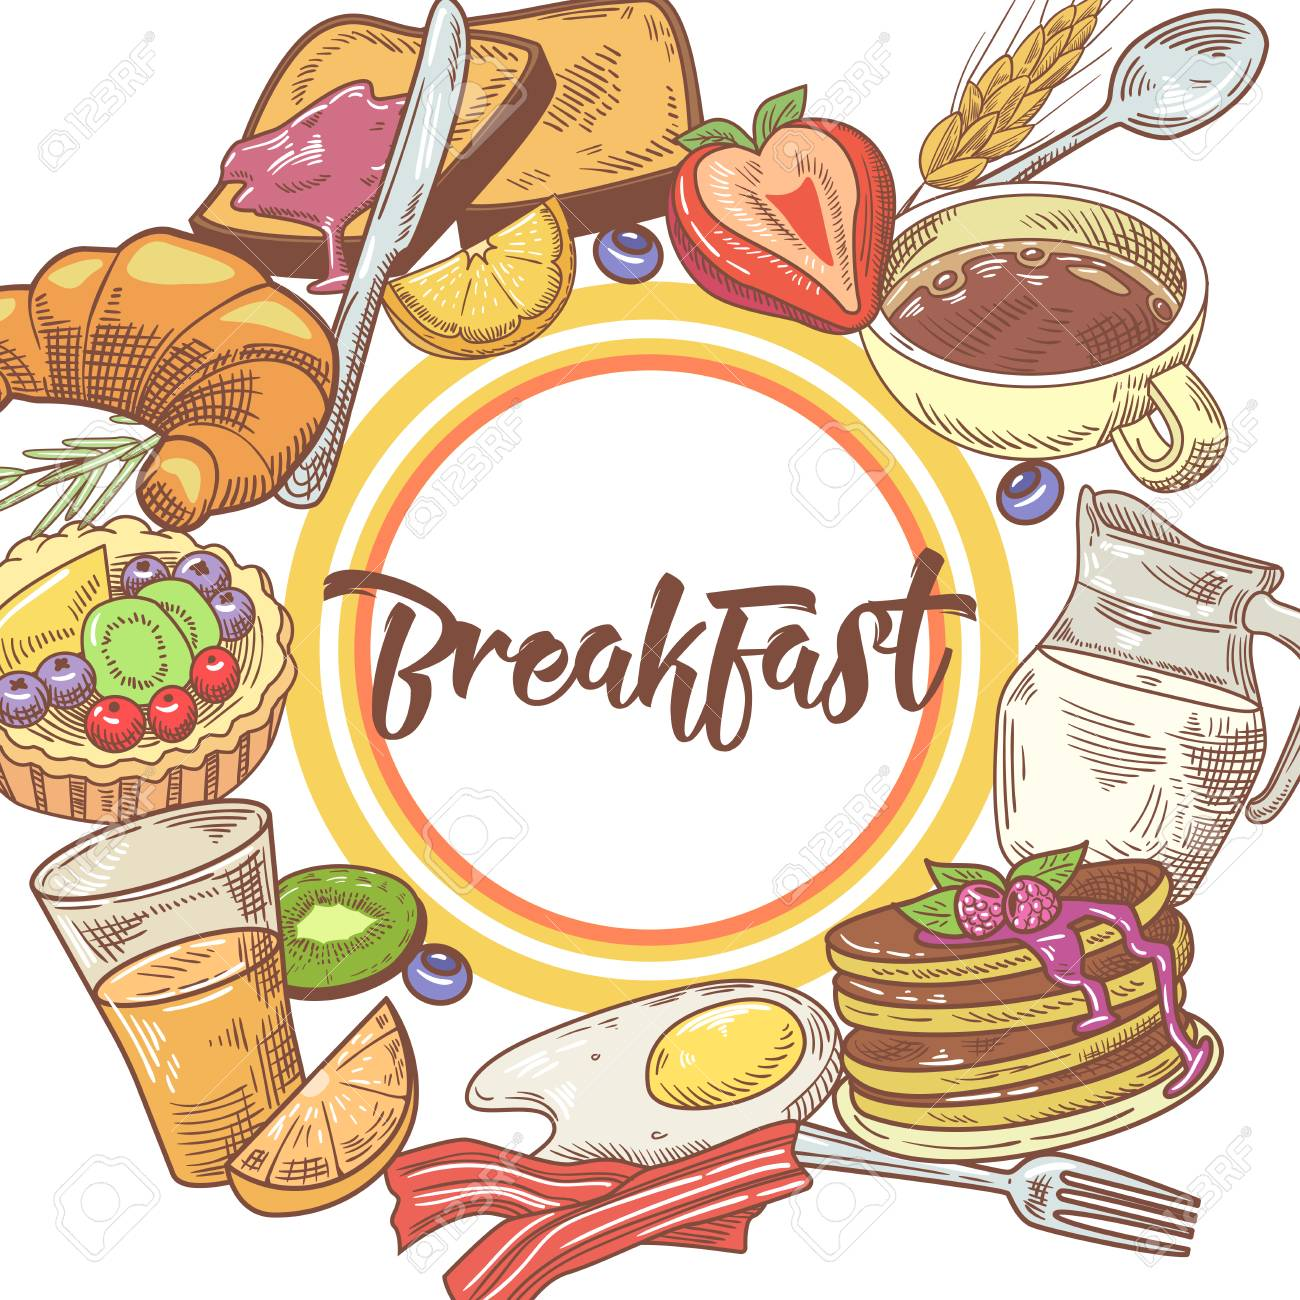 Healthy Breakfast Hand Drawn Design with Pancakes, Fruits and...